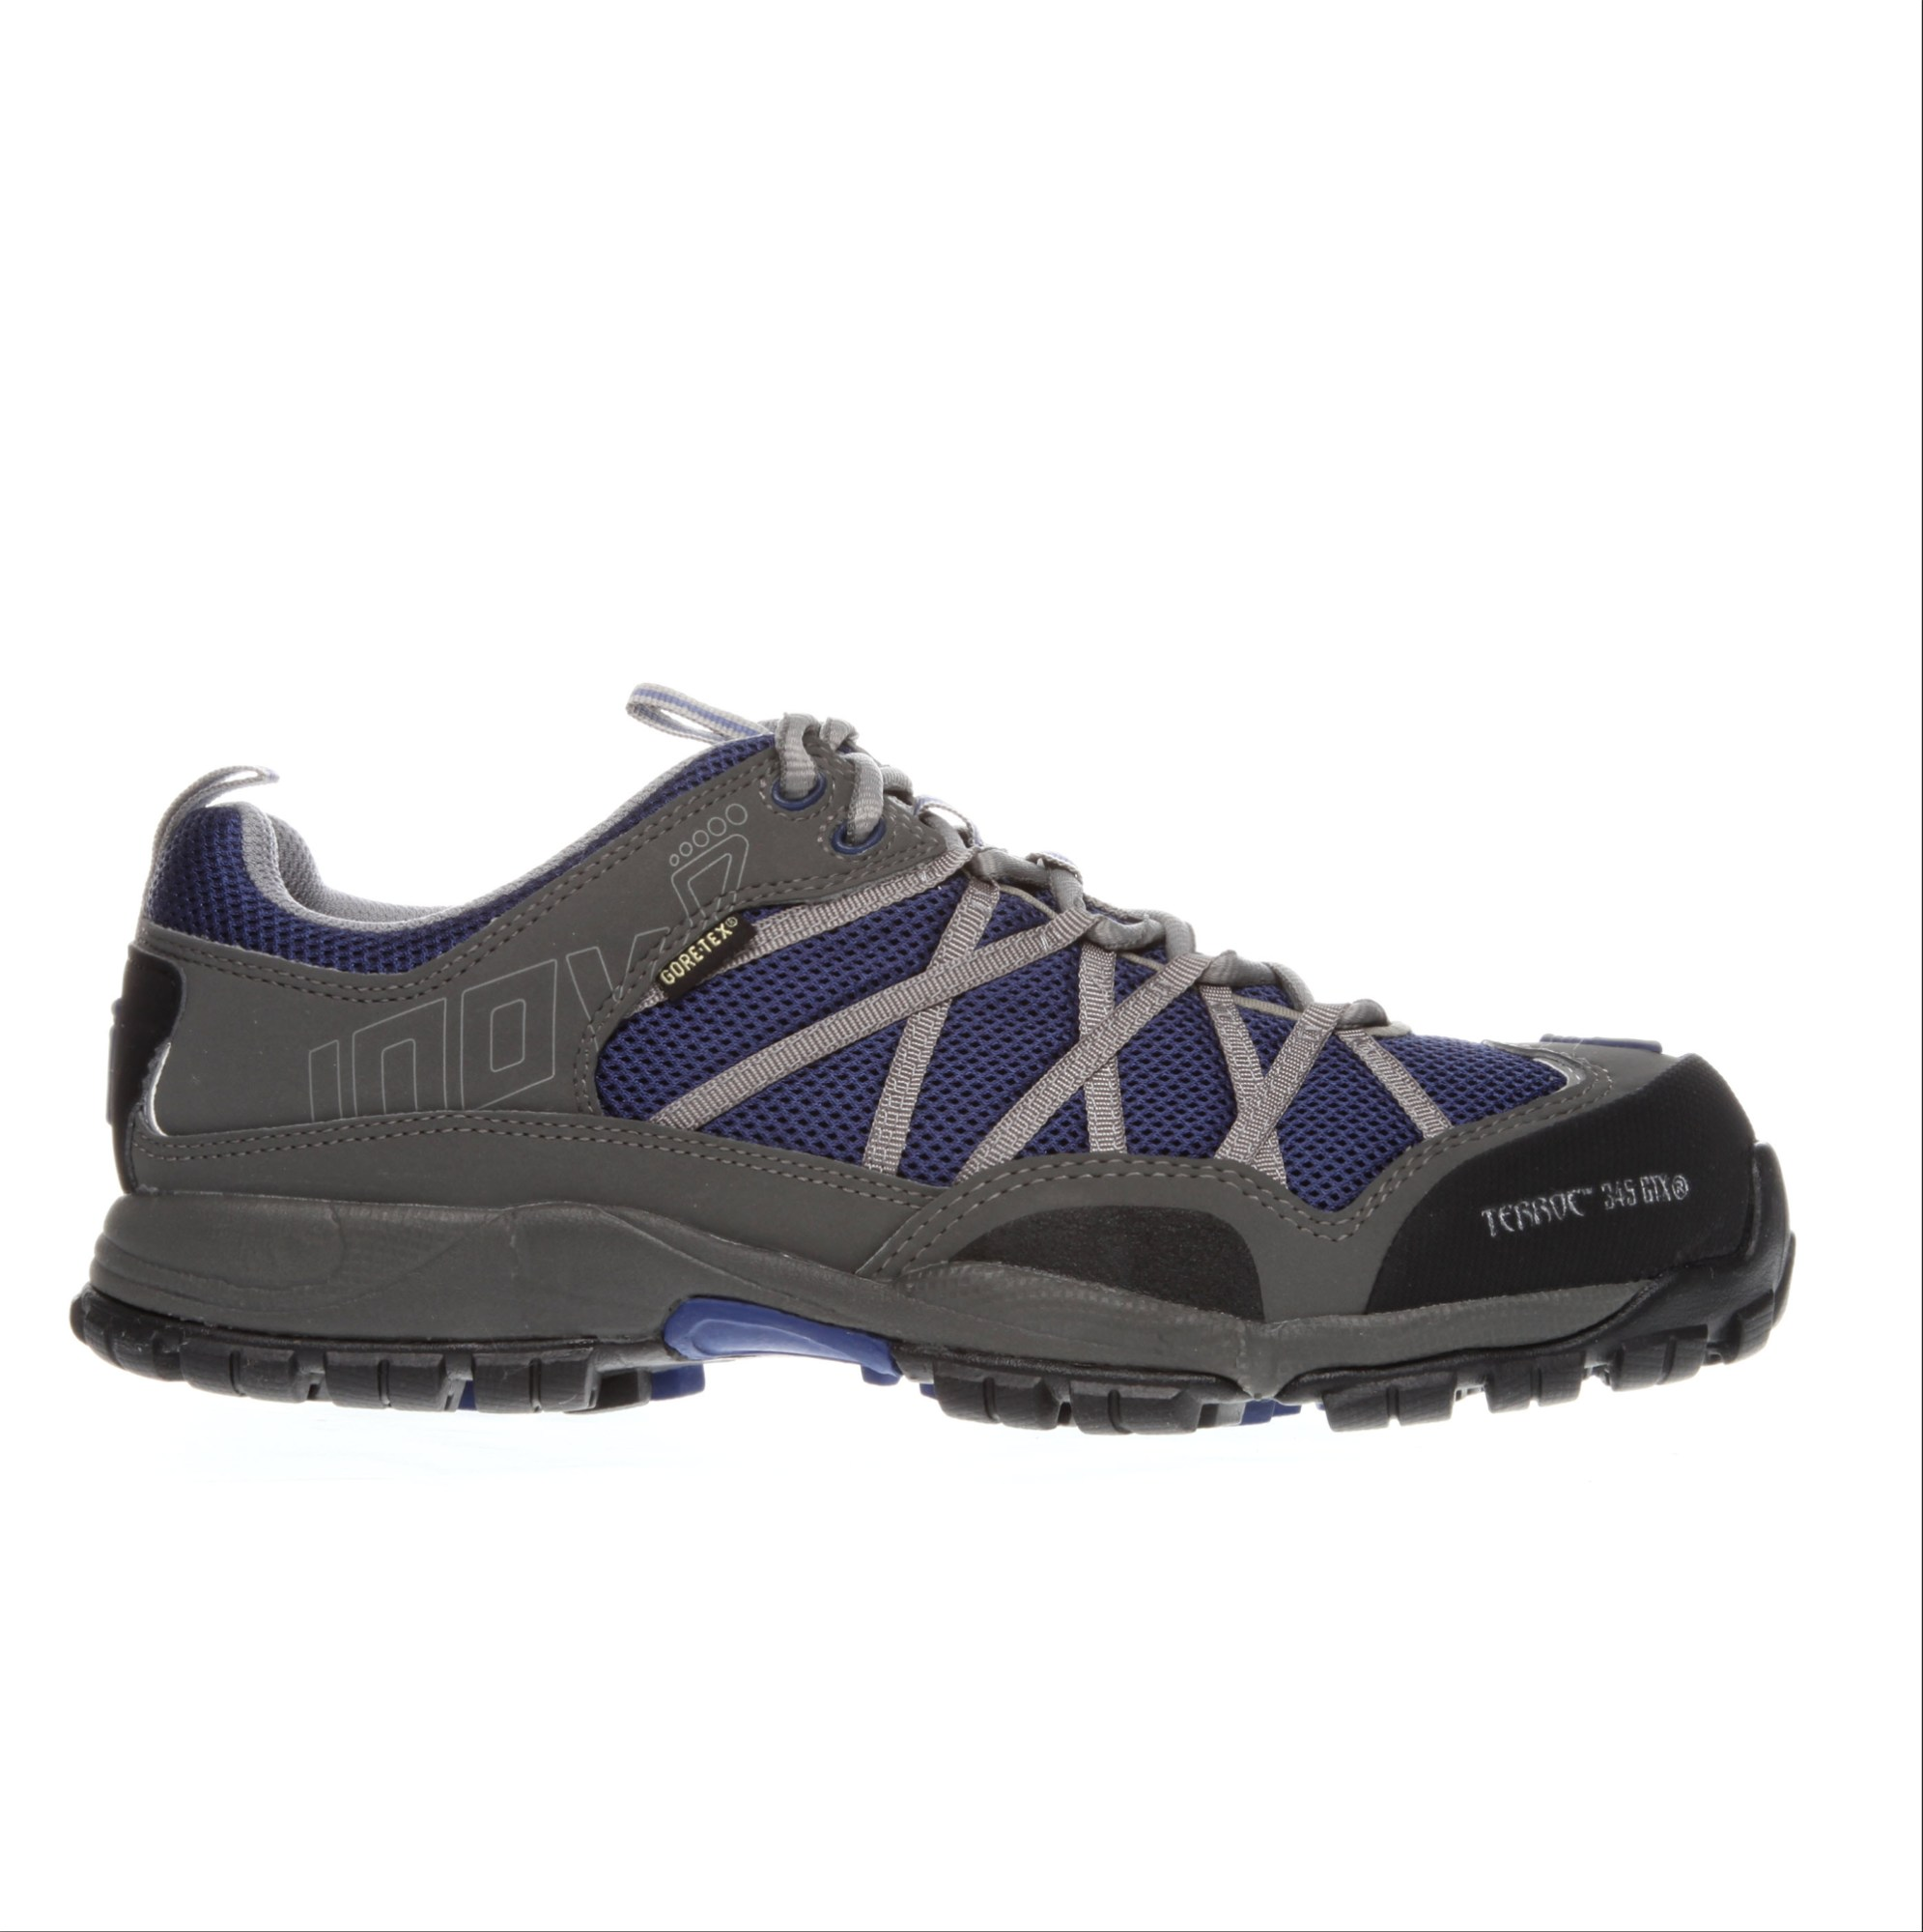 Wiggle Inov-8 Terroc 345 Gtx Aw12 Offroad Running Shoes